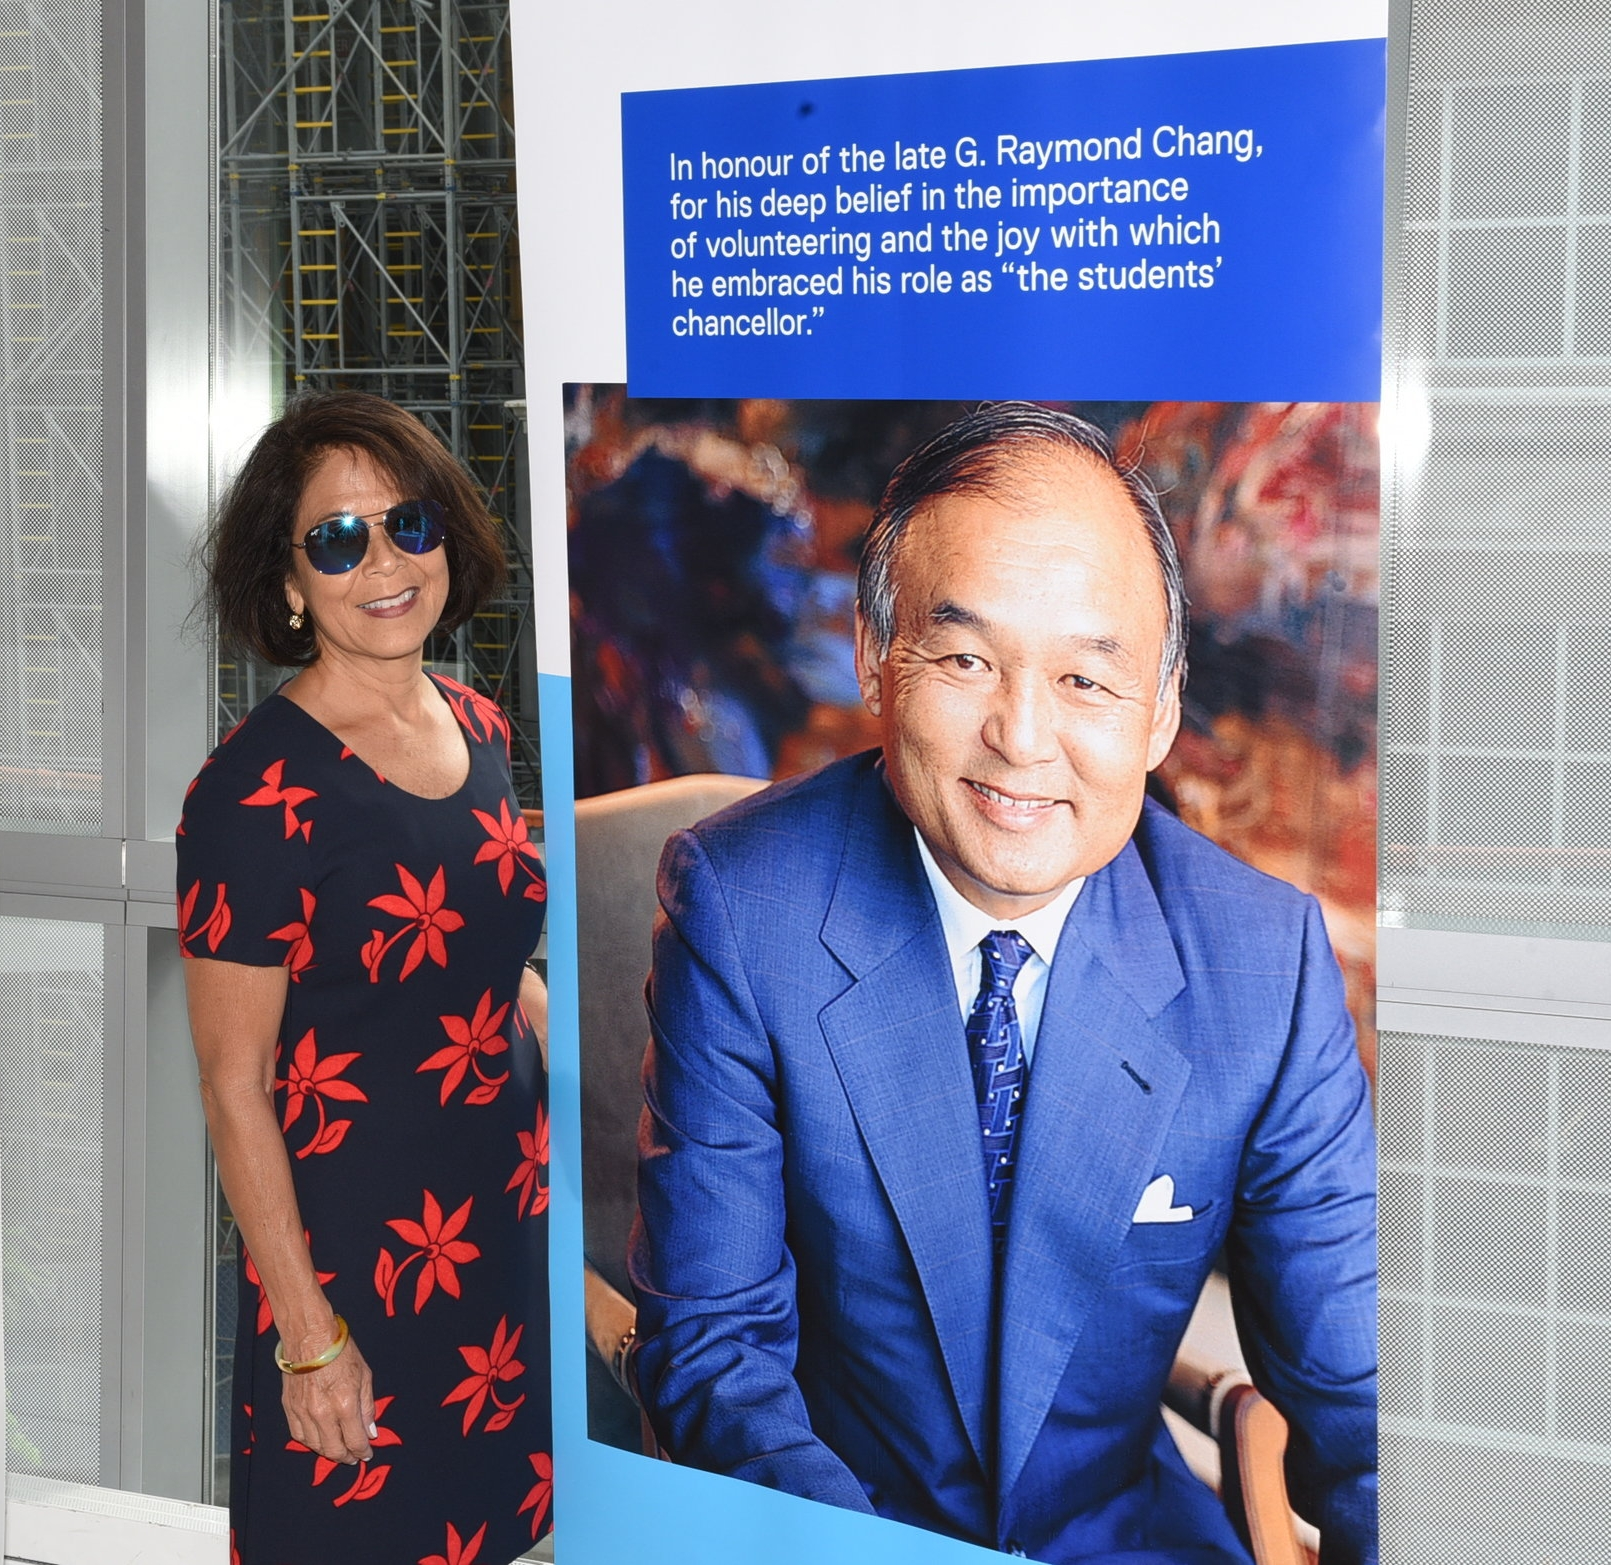 Donette Chin-Loy Chang standing next to a portrait of her late husband Raymond Chang